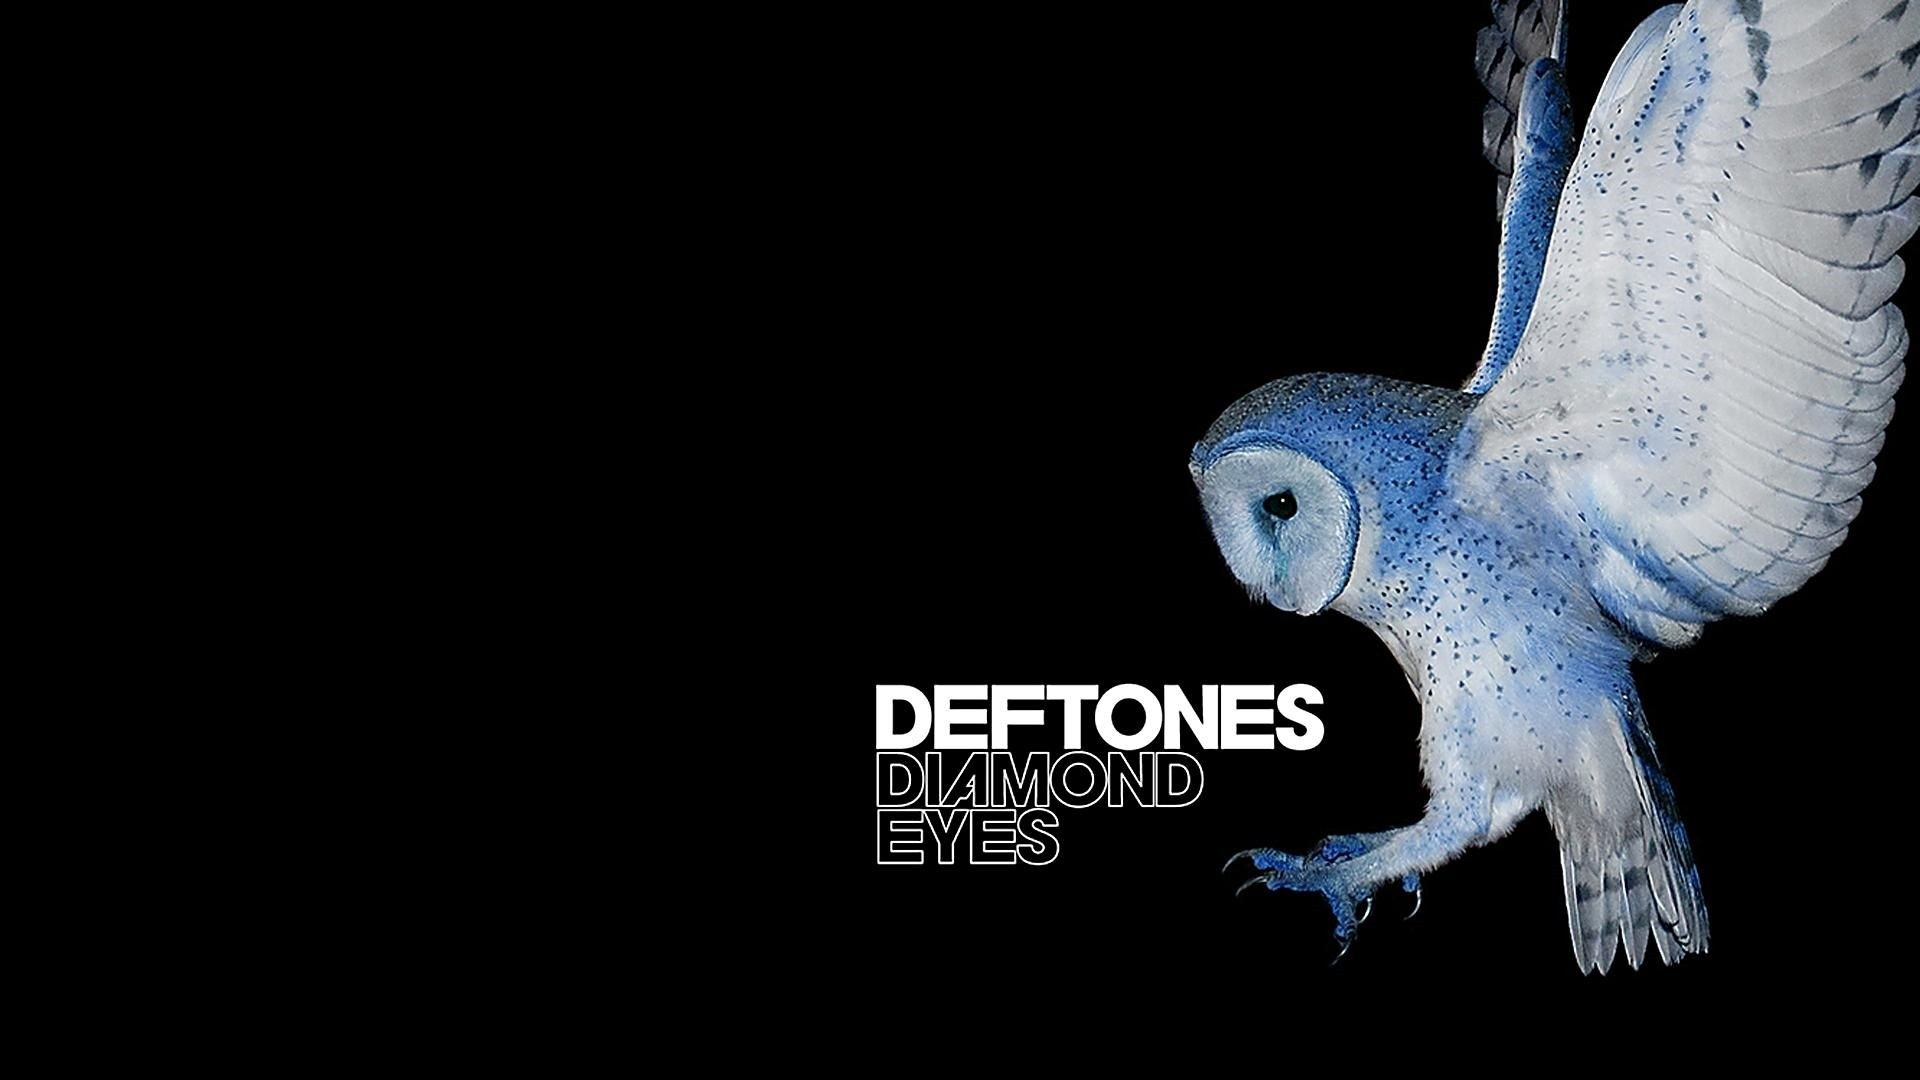 Deftones download free wallpaper for pc in hd